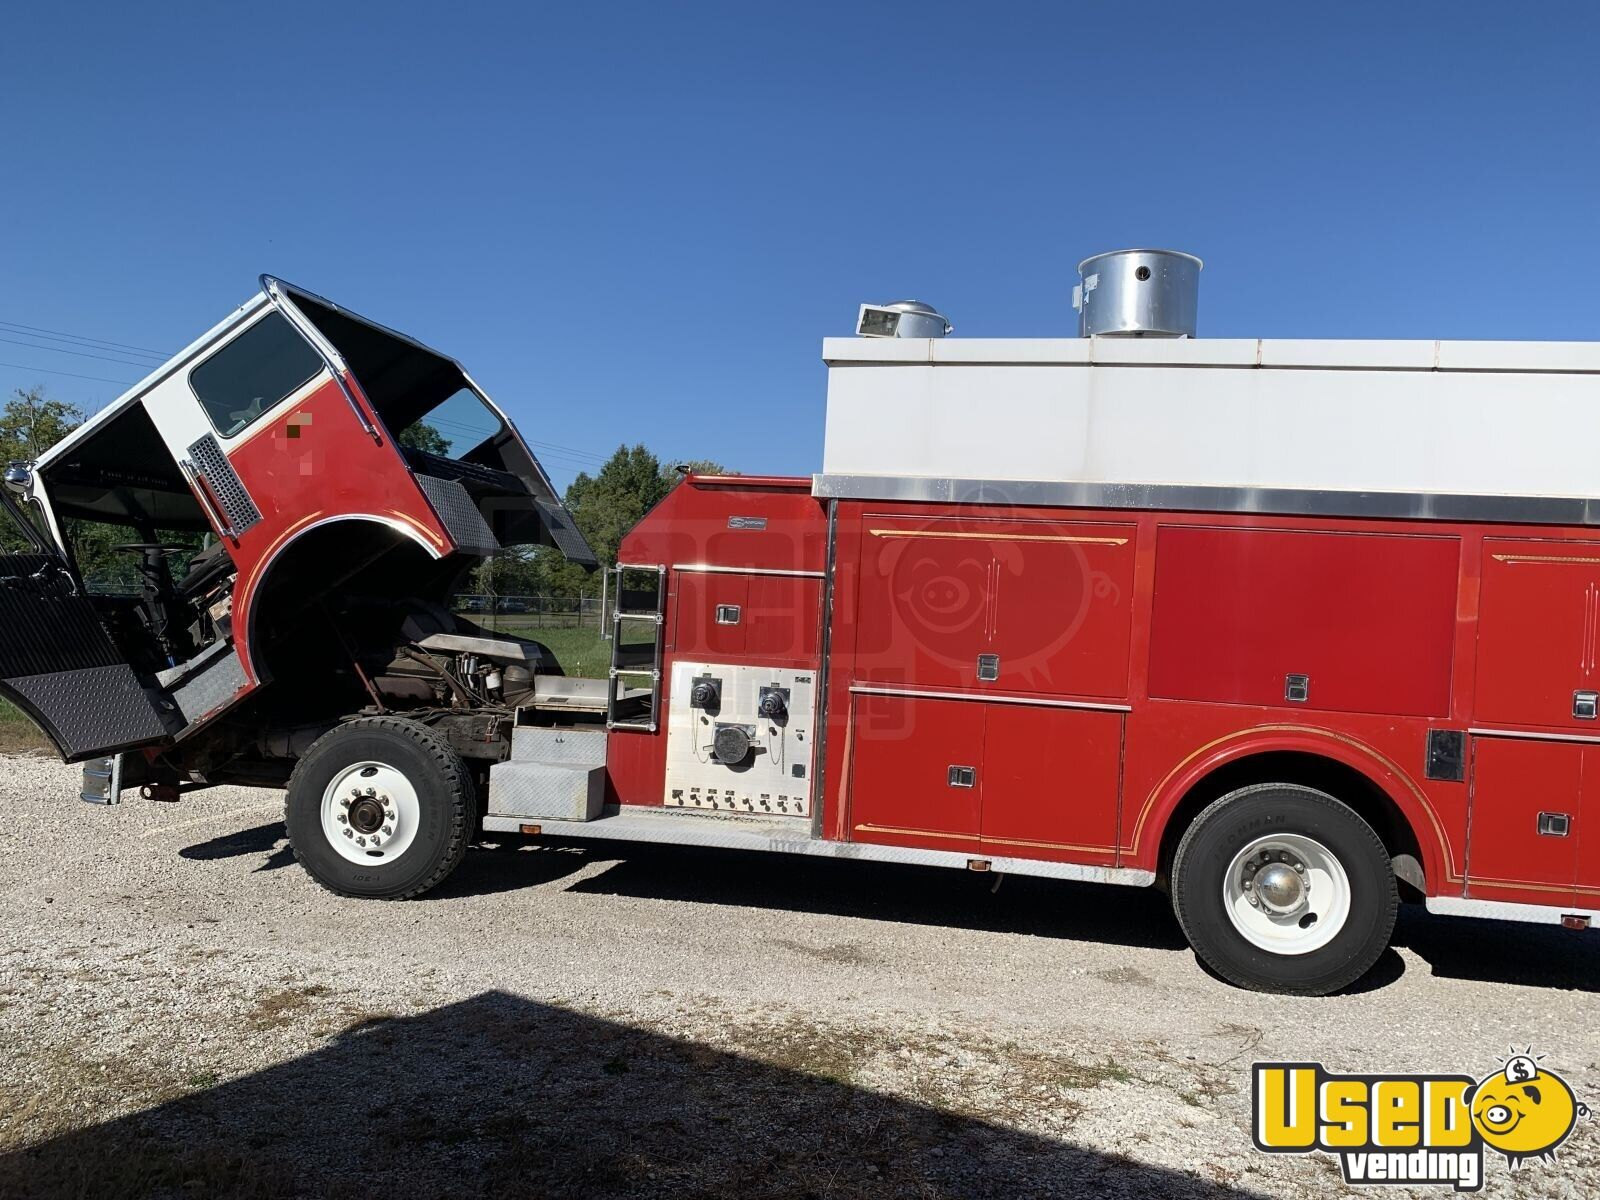 1995 All-purpose Food Truck Shore Power Cord Missouri Diesel Engine for Sale - 8